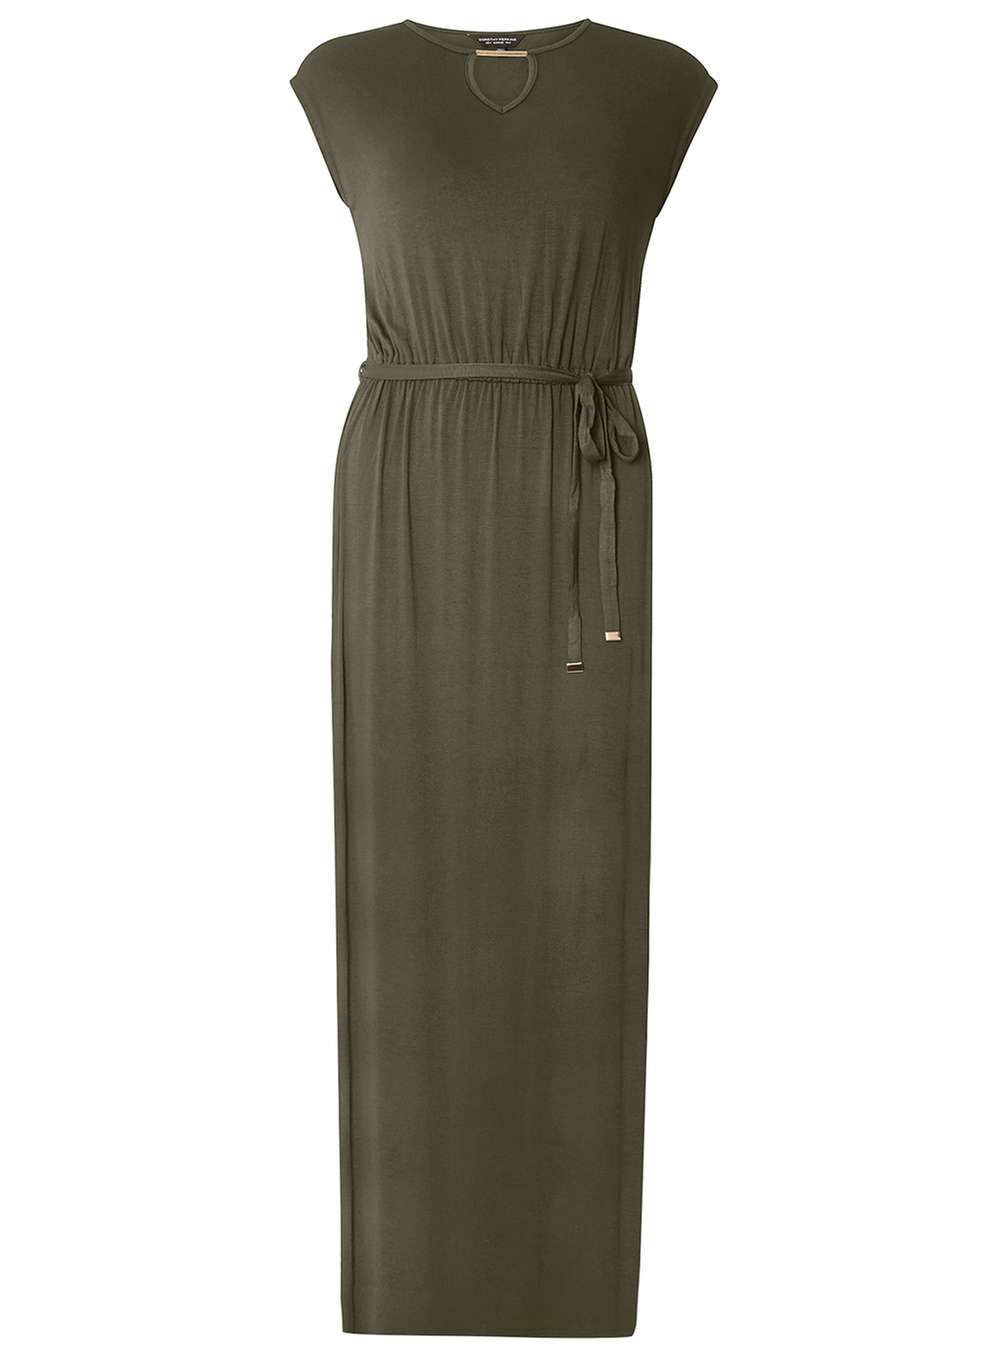 9739a202641 House Of Fraser Womens Coast Dresses - AByte Computer Solutions